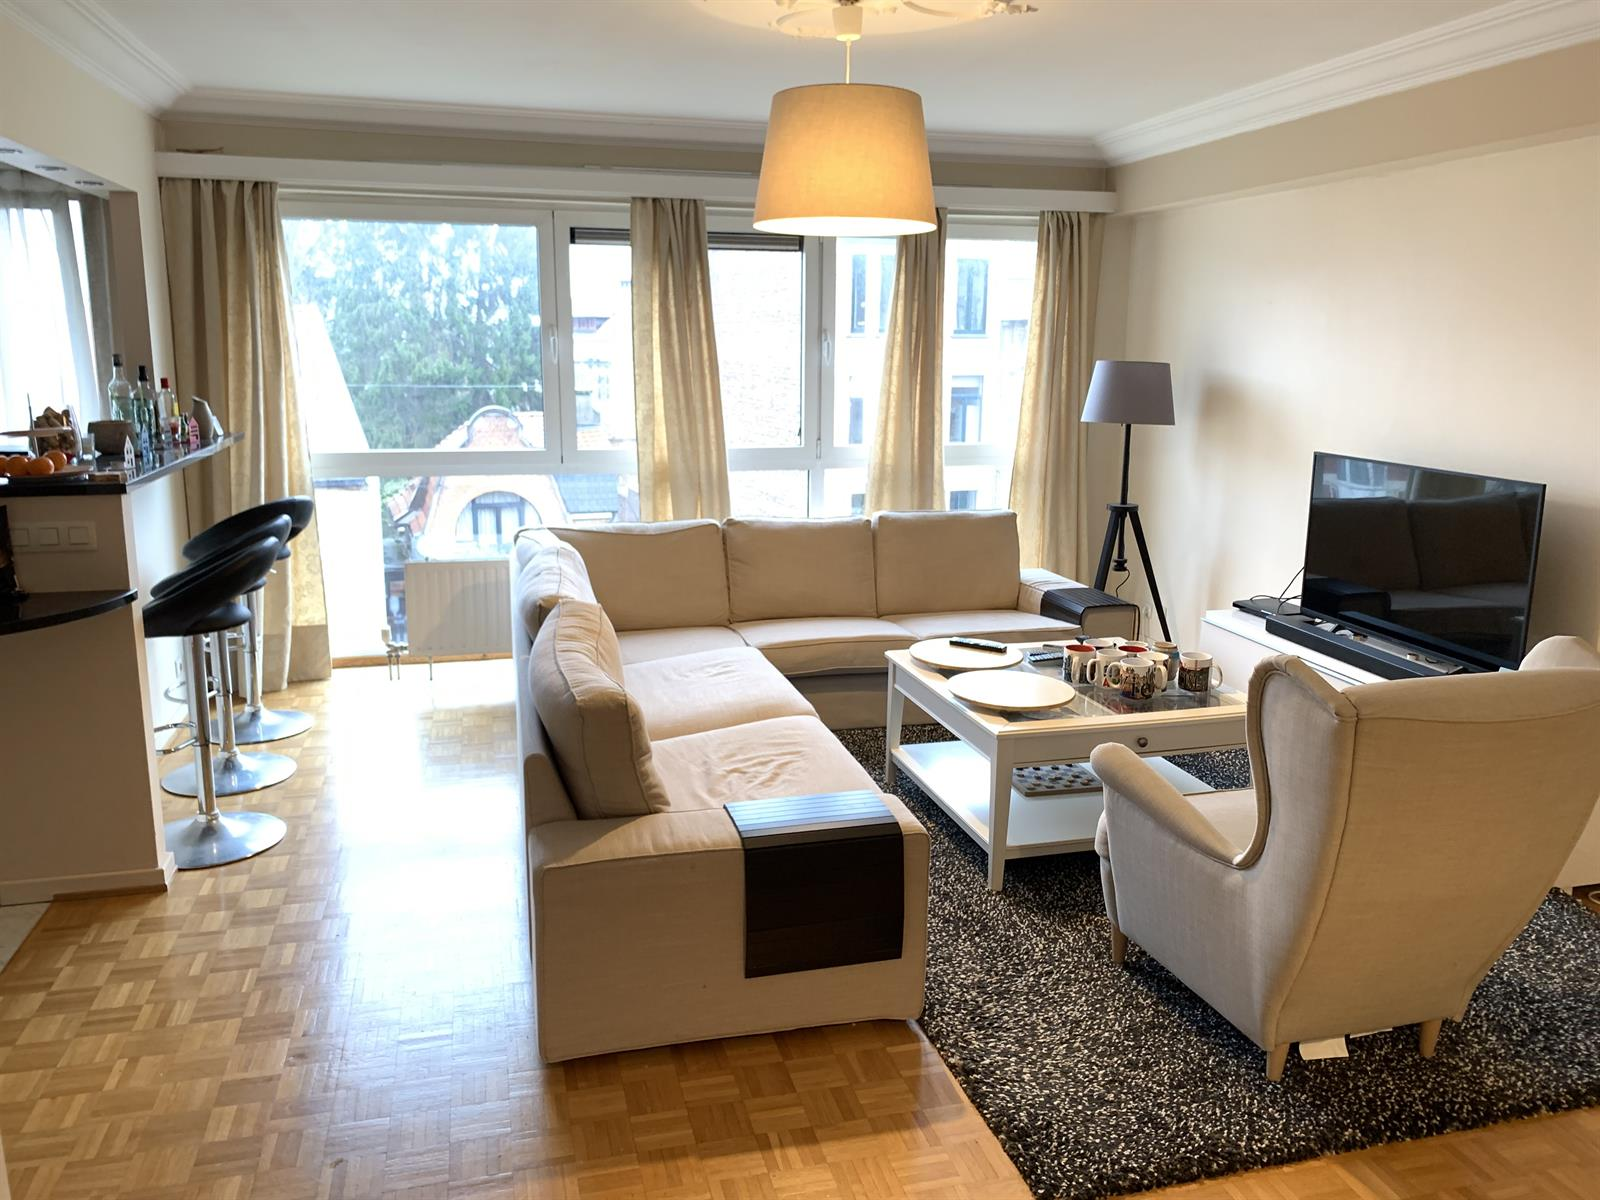 Appartement - Woluwe-Saint-Pierre - #4223959-2